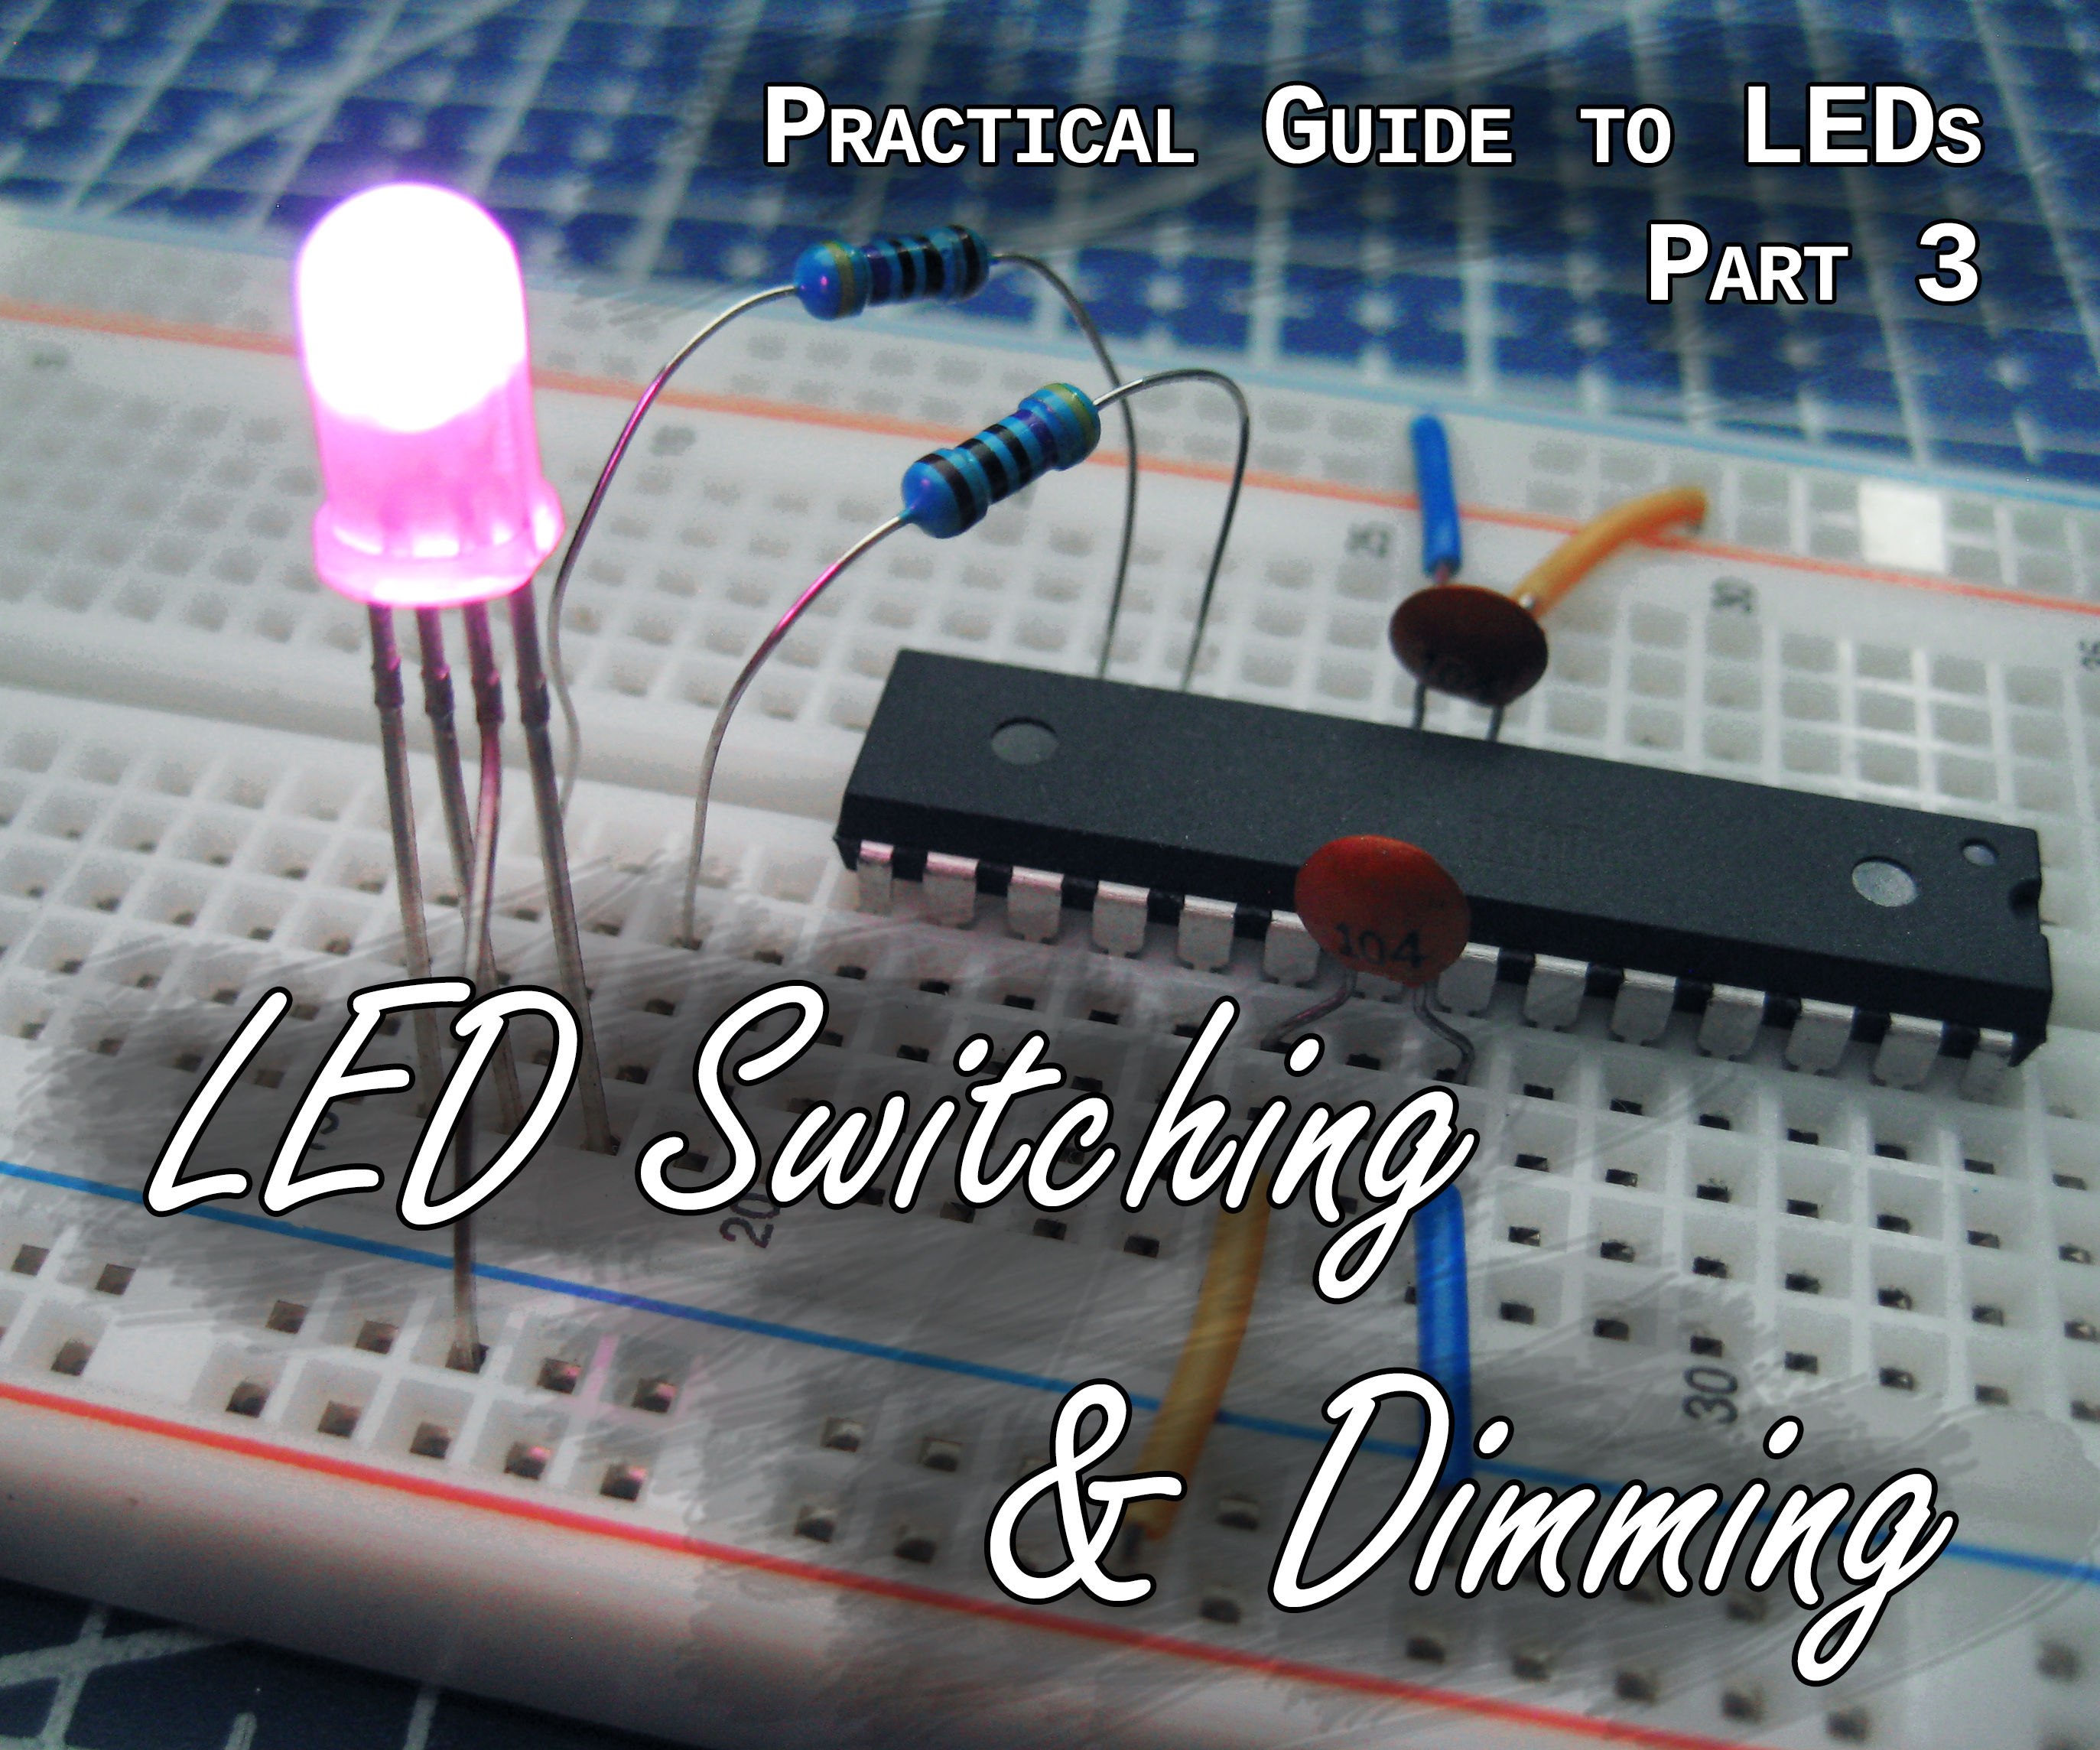 Practical Guide to LEDs 3 - Switching & Dimming